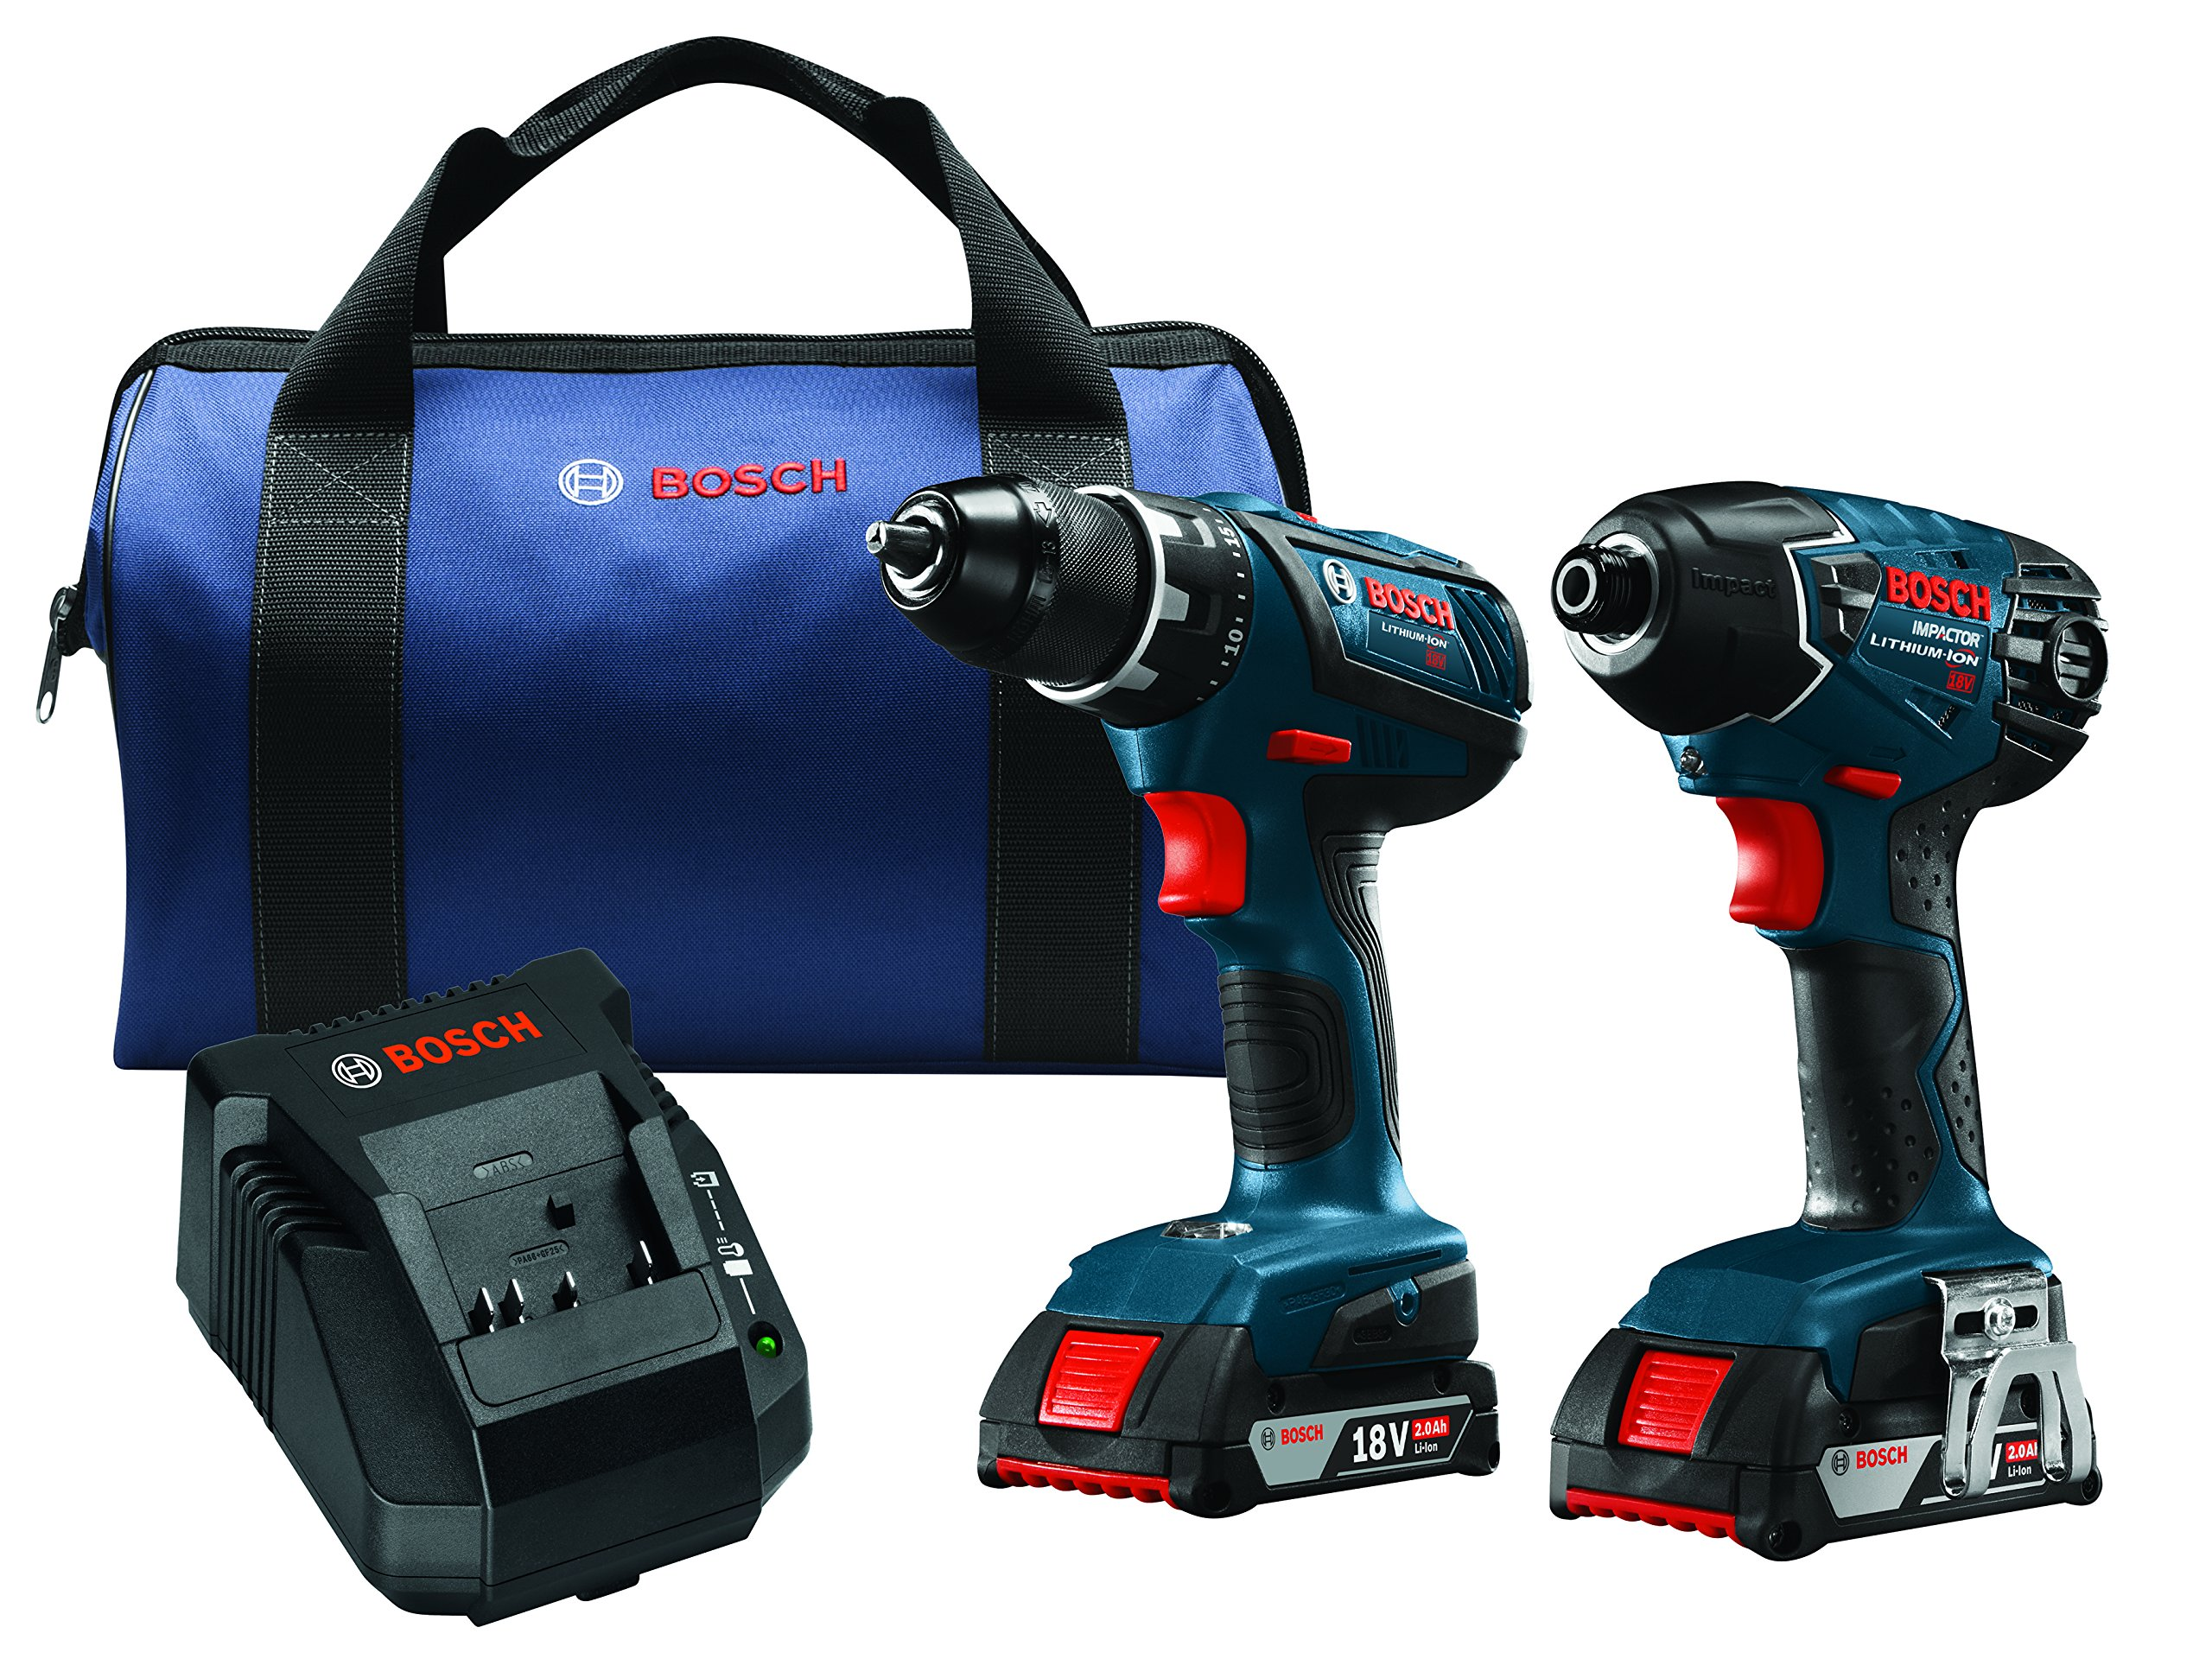 Bosch CLPK232A-181 18V Lithium-Ion Cordless Drill Driver / Impact Combo Kit (2.0 Ah Batteries) by Bosch